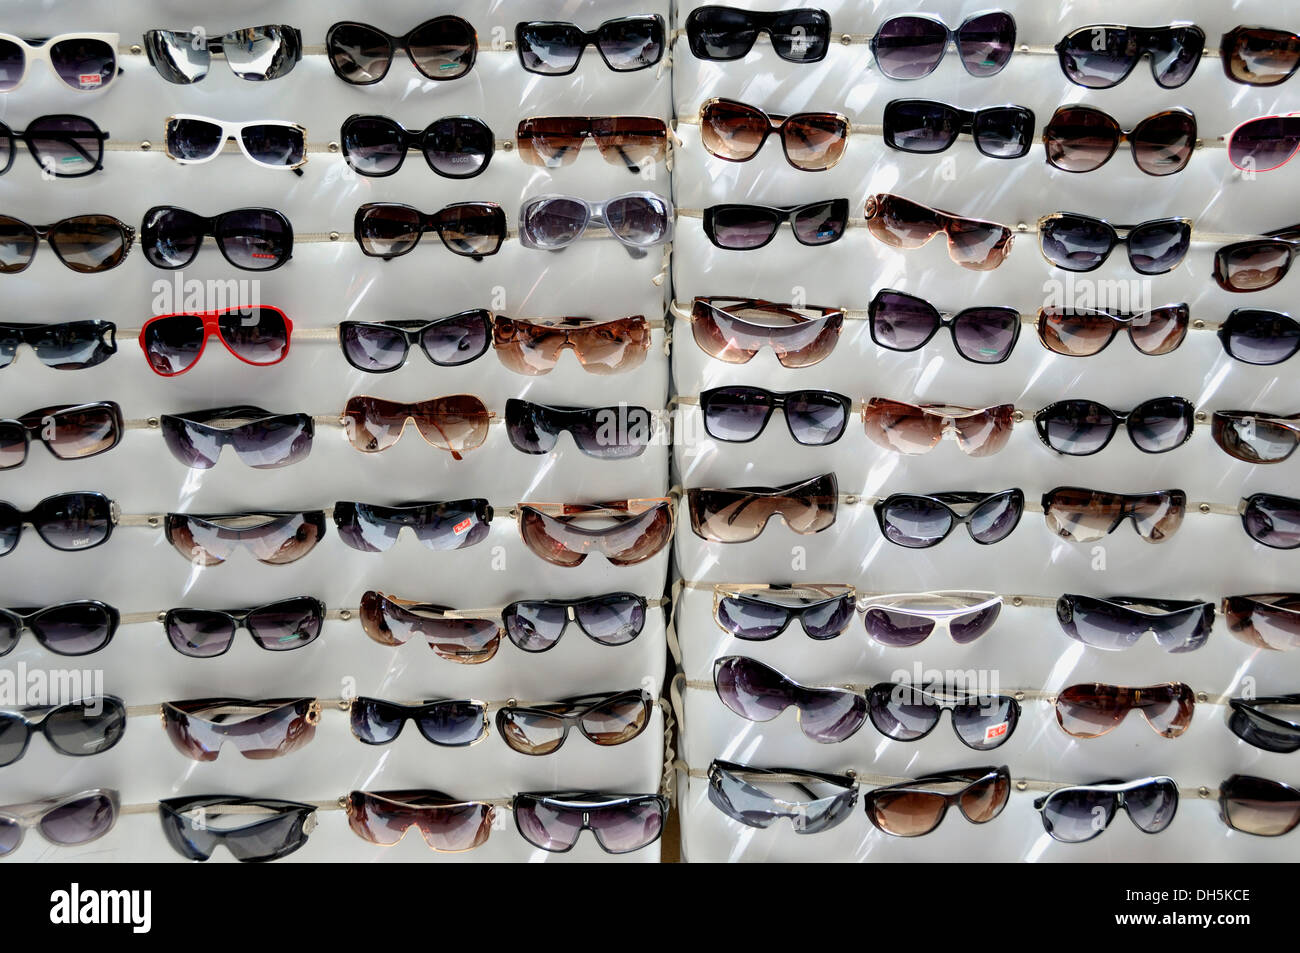 Sunglasses, plagiarism, rip-offs, Fez, Morocco, Africa - Stock Image